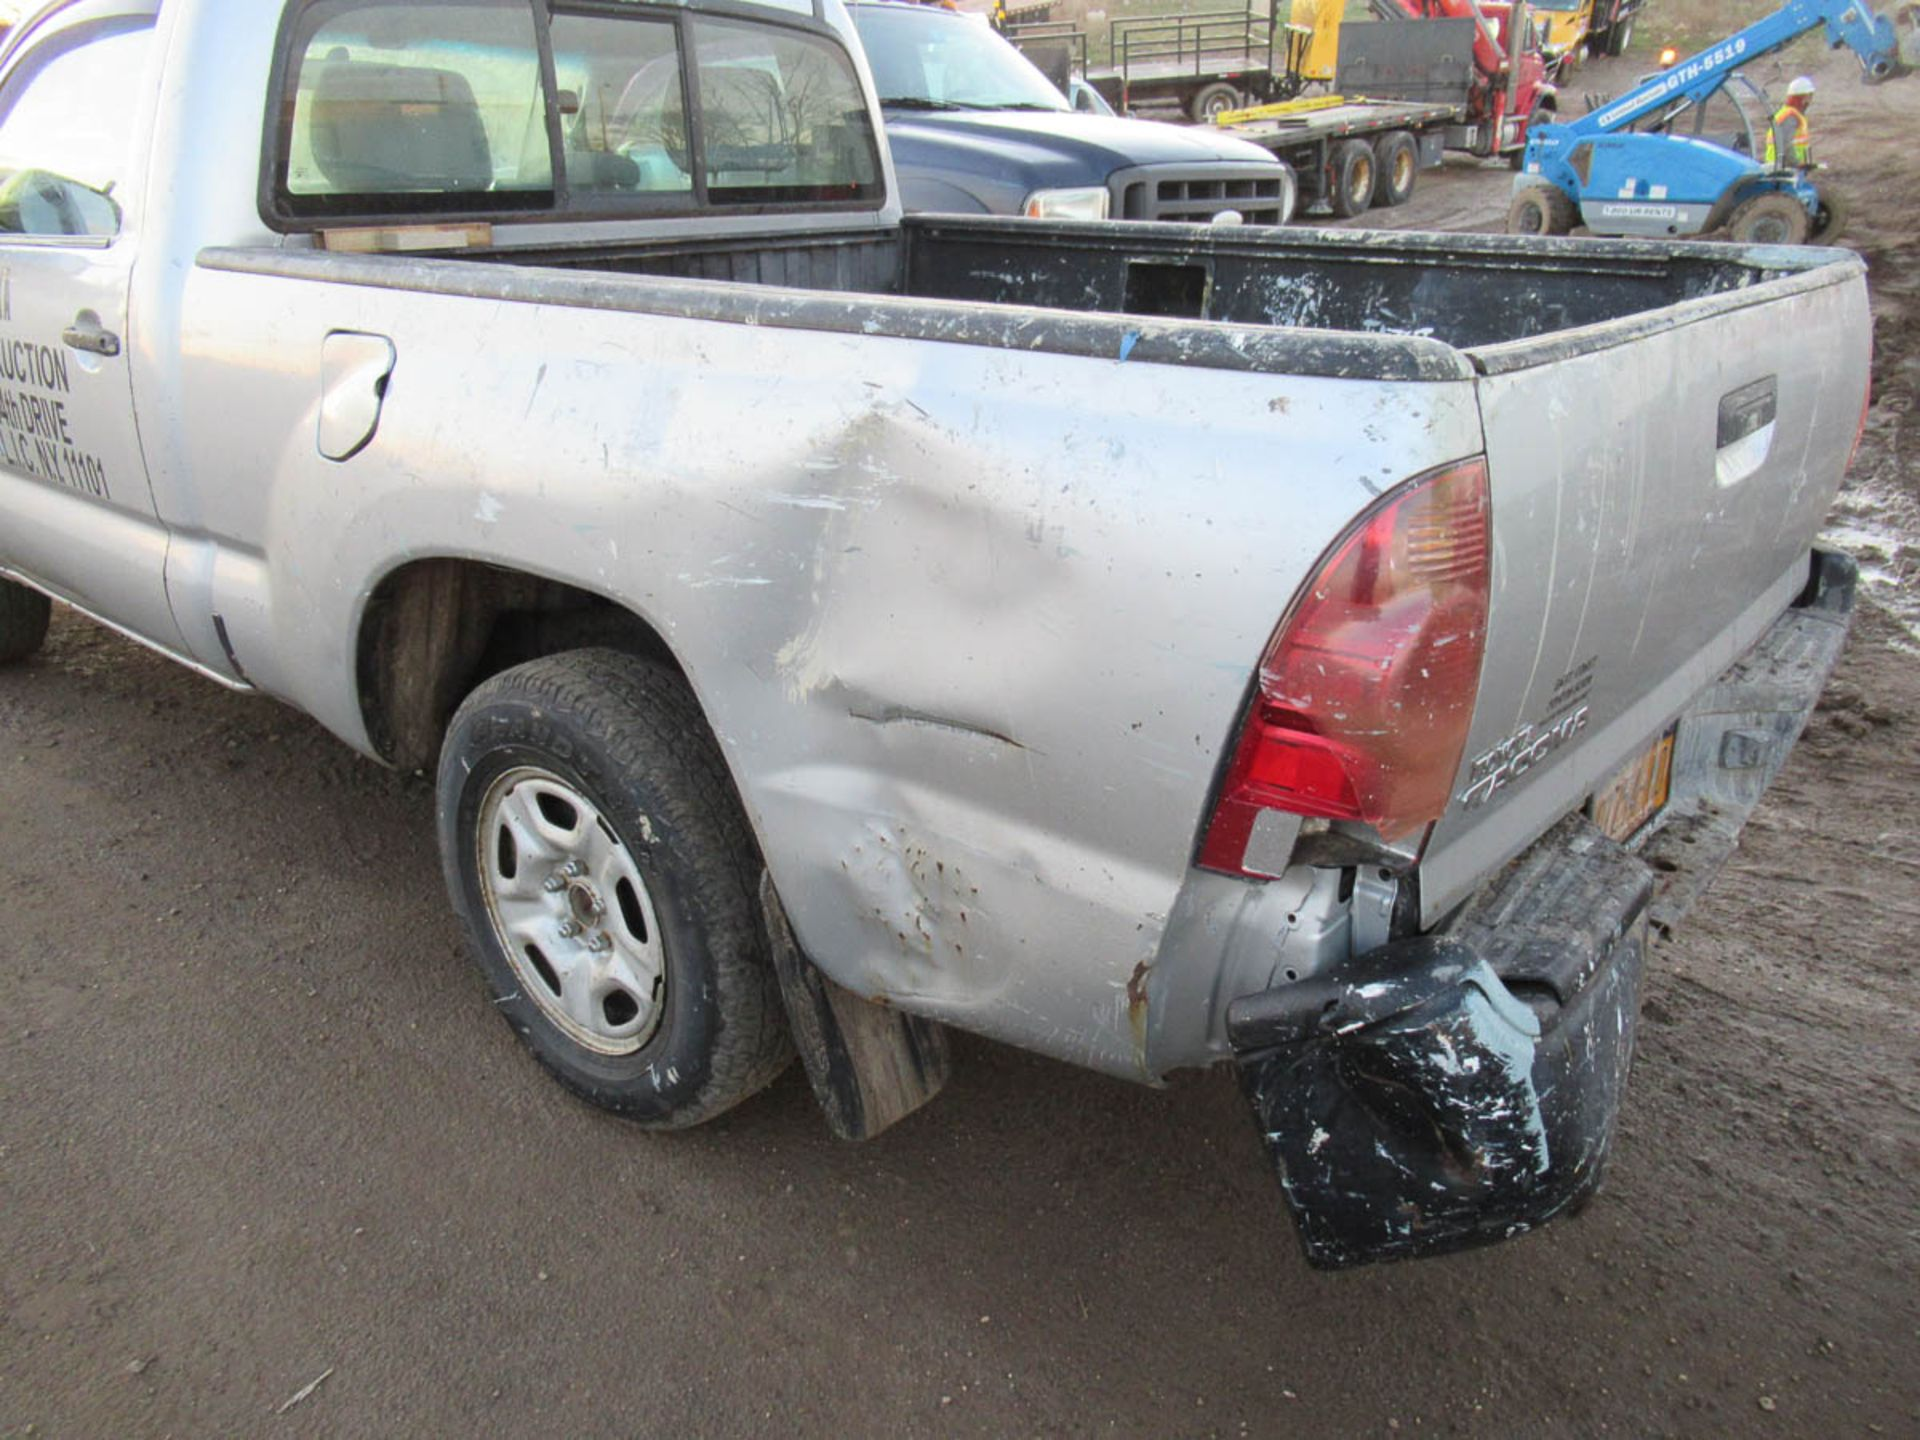 2008 TOYOTA TACOMA PICKUP TRUCK, AUTOMATIC, WITH APPROXIMATELY 105,732 MILES, VIN: 5TENX22N382504186 - Image 2 of 12